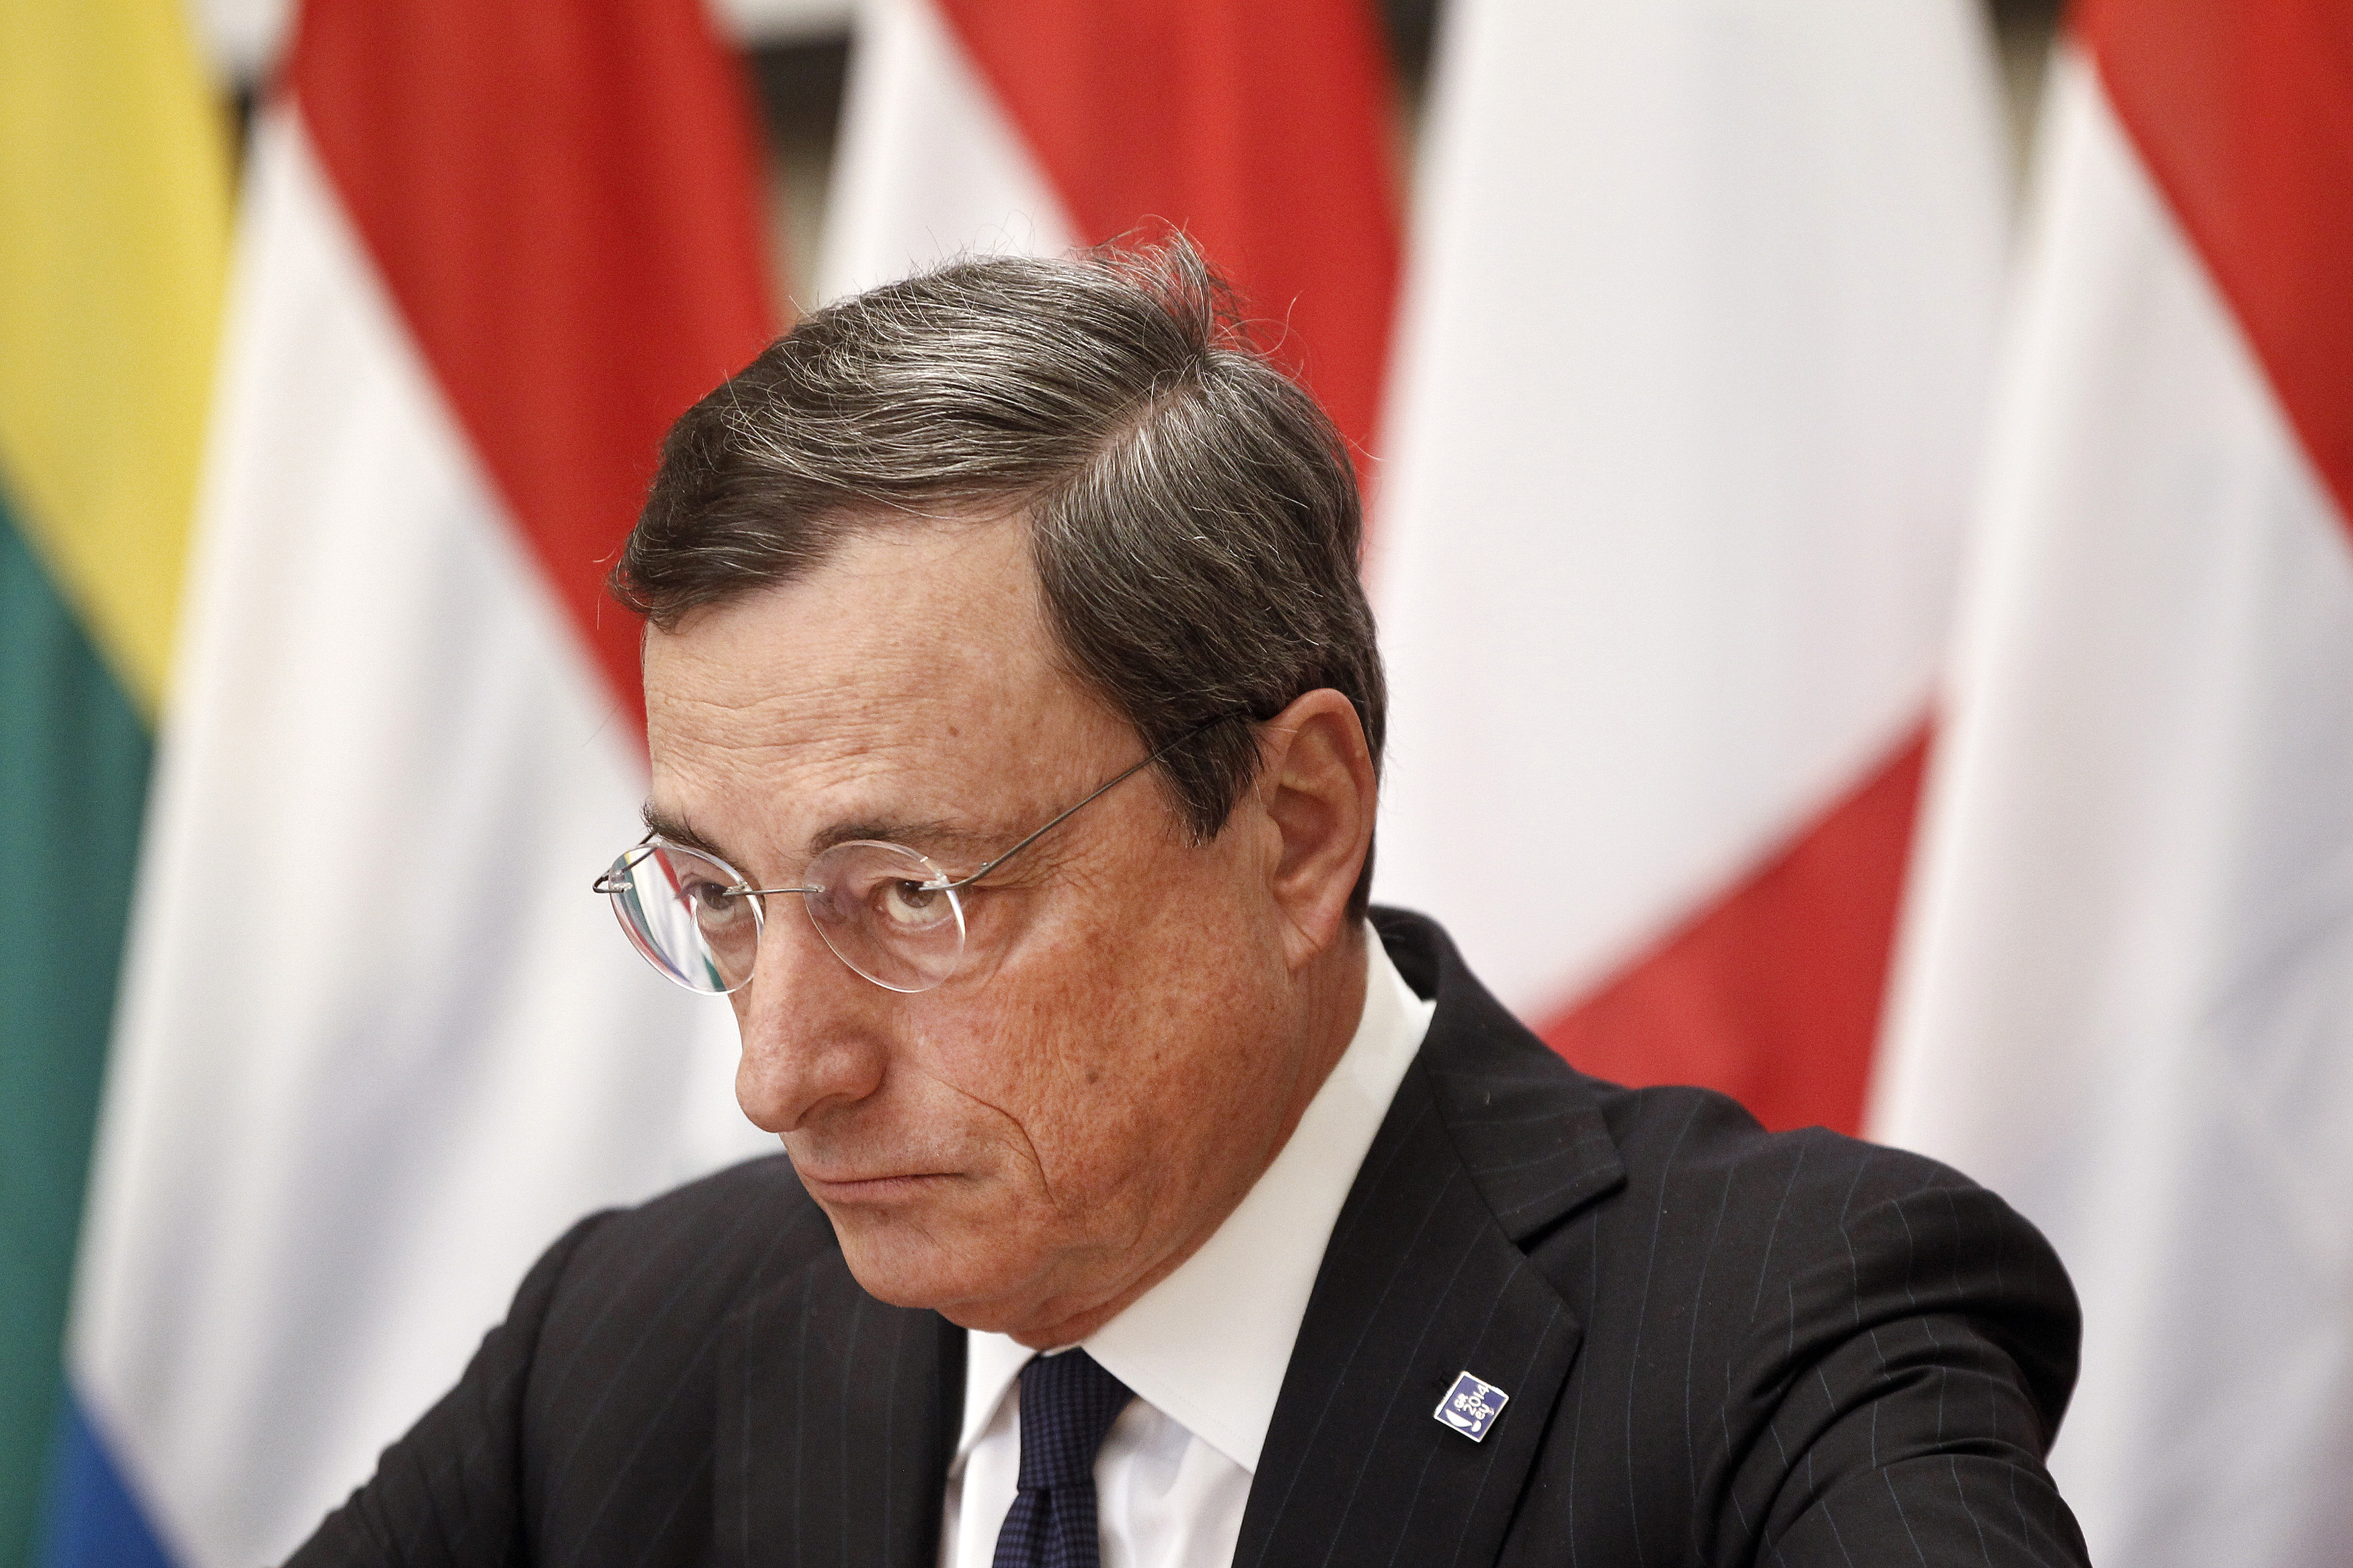 European Central Bank (ECB) President Draghi attends a news conference during a European Union Finance Ministers informal meeting in Athens